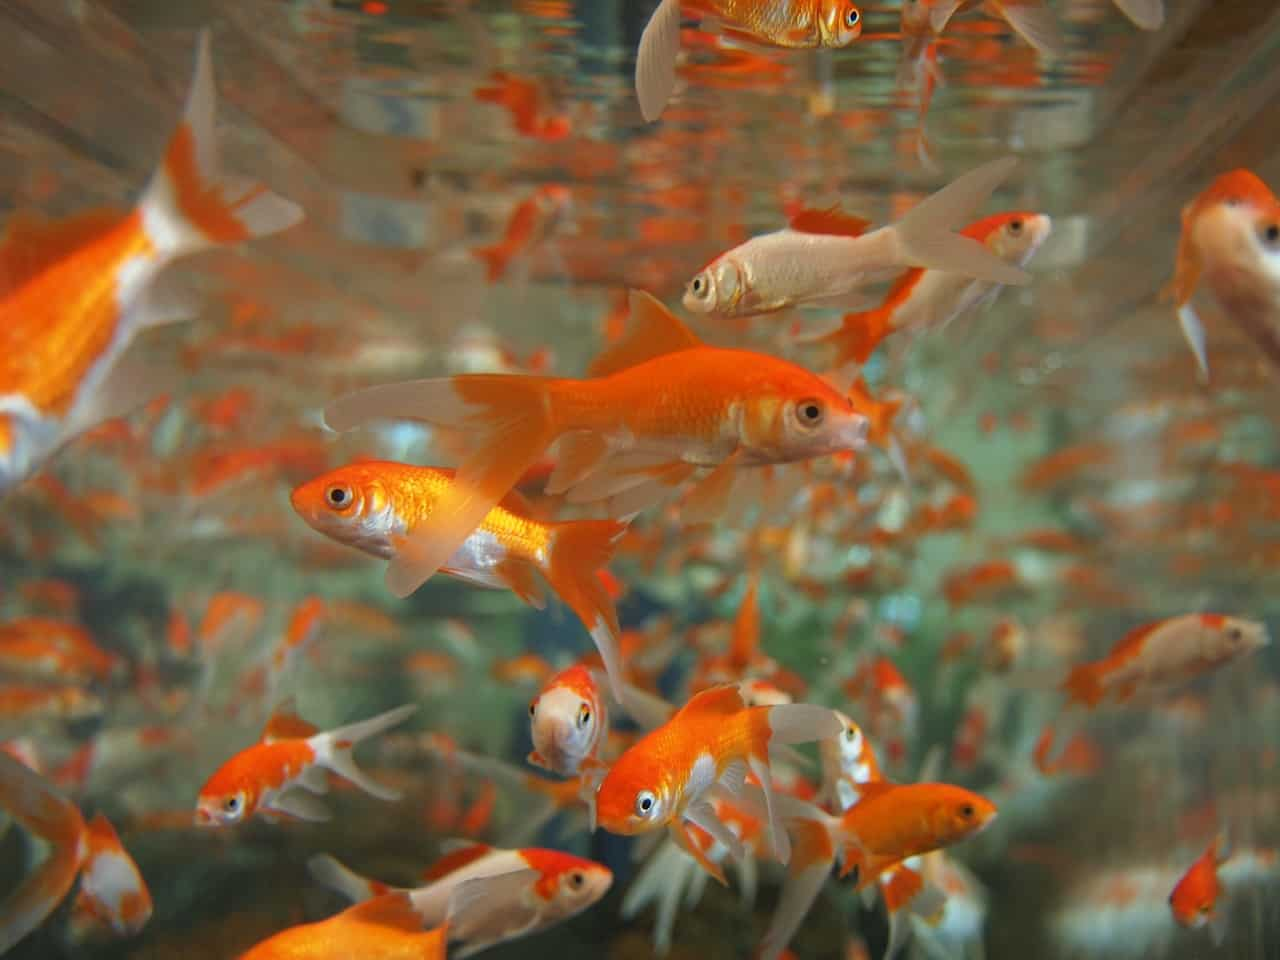 Caring for goldfish in aquaponics systems